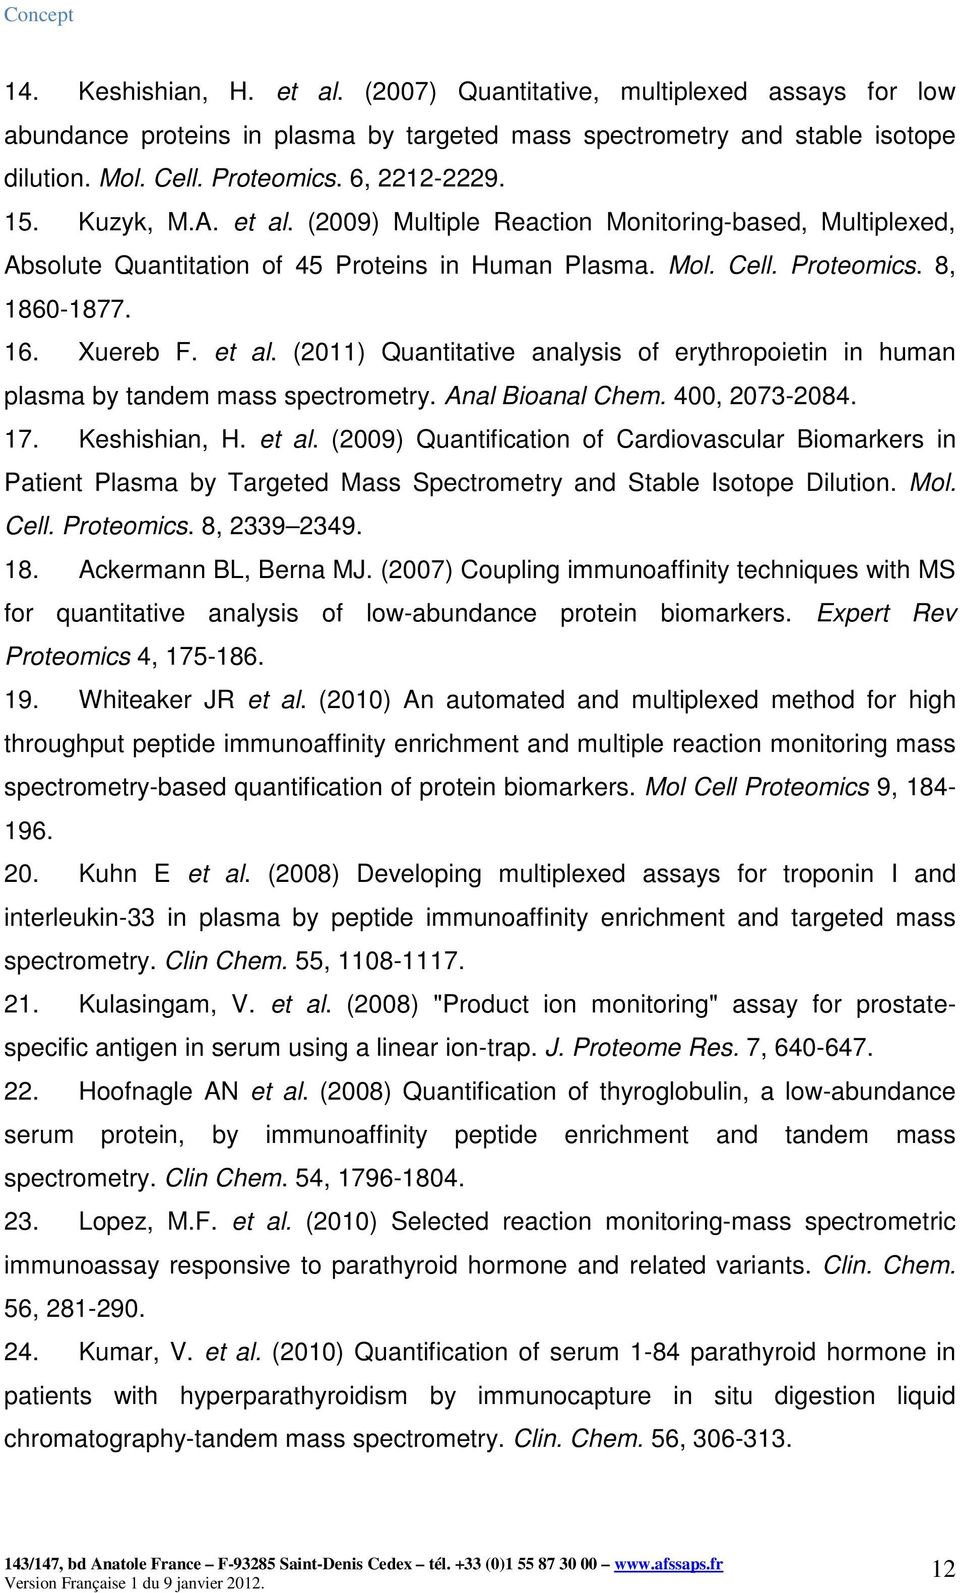 Anal Bioanal Chem. 400, 2073-2084. 17. Keshishian, H. et al. (2009) Quantification of Cardiovascular Biomarkers in Patient Plasma by Targeted Mass Spectrometry and Stable Isotope Dilution. Mol. Cell.